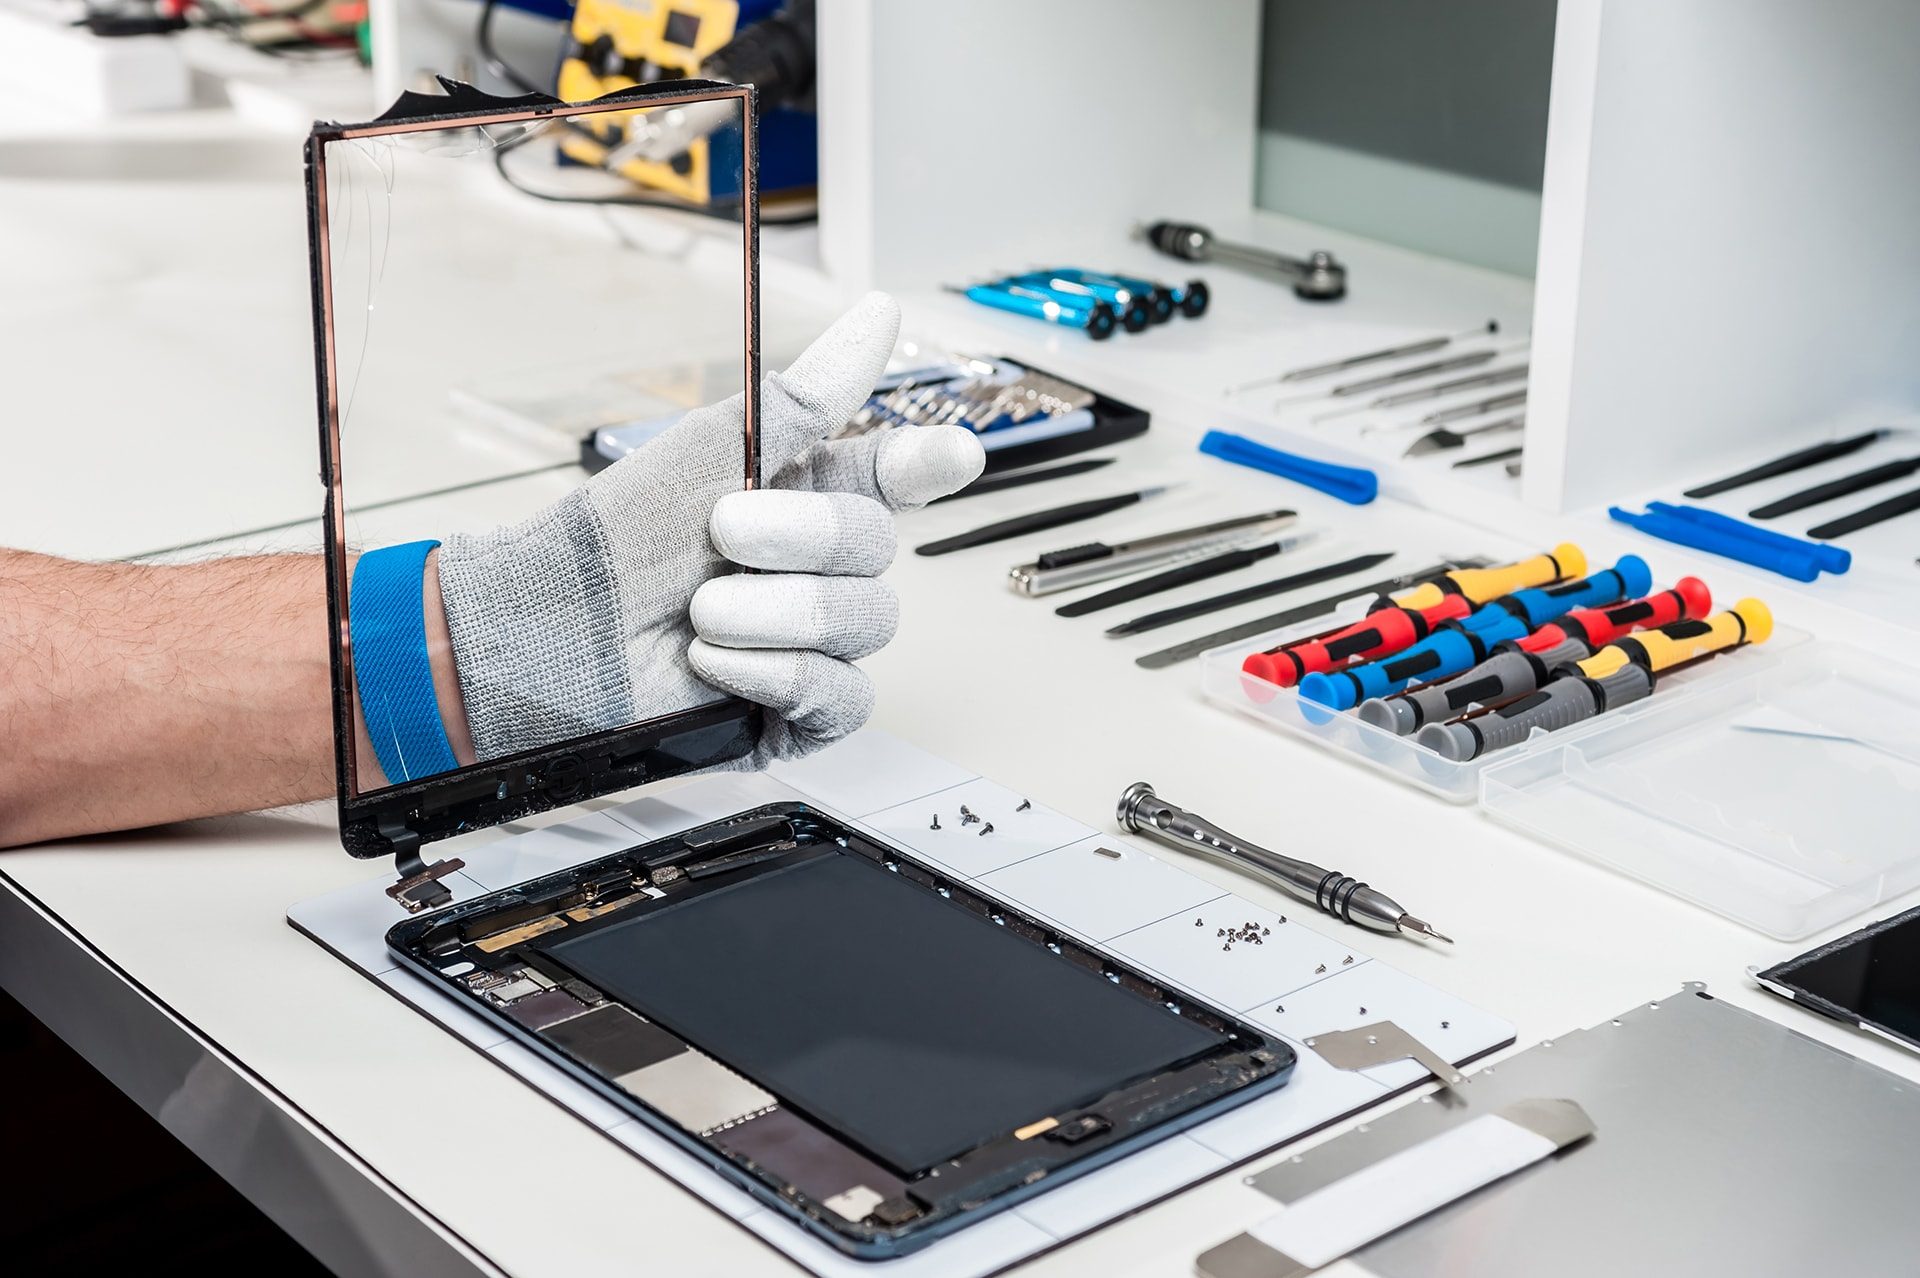 Image of an iPad being repaired next to a collection of iPad repair tools